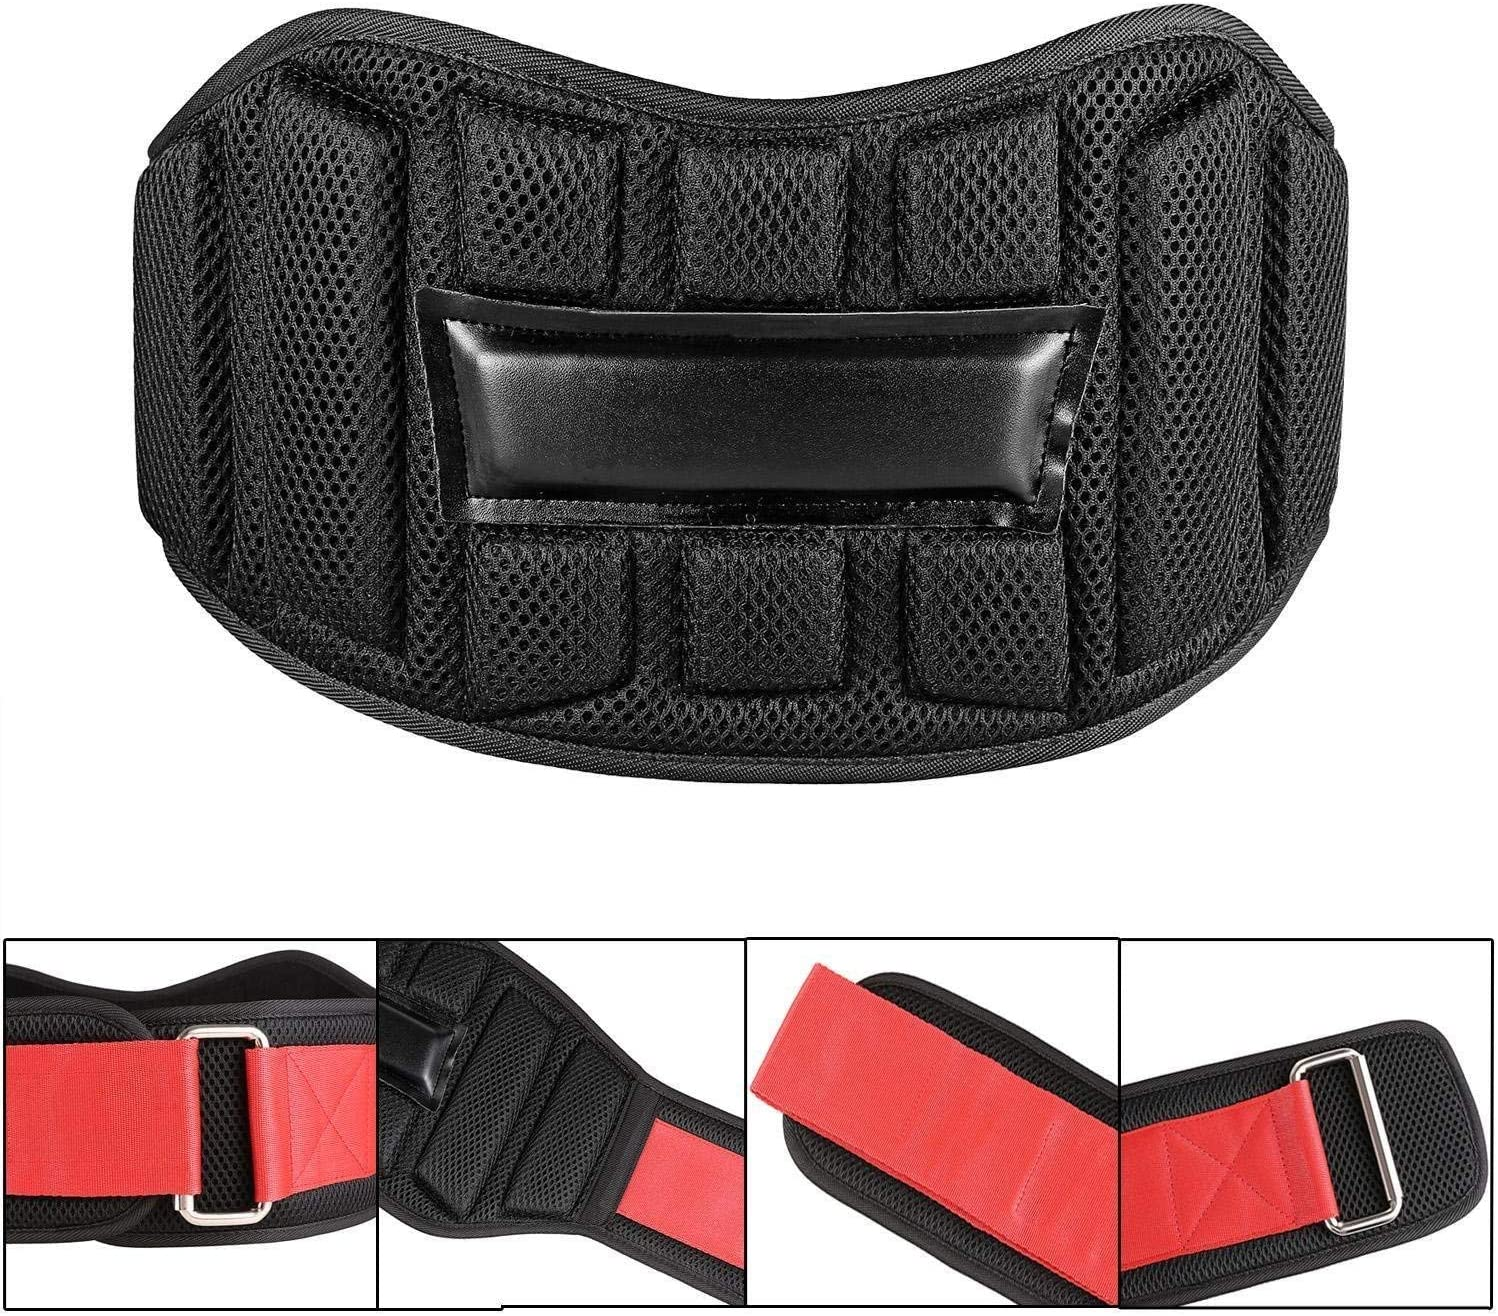 wilem Weight Lifting Belt for Men and Women, Comfortable Durable Genuine Leather – Great Lower Back Lumbar Support for Squats, Deadlifts, Gym Workouts